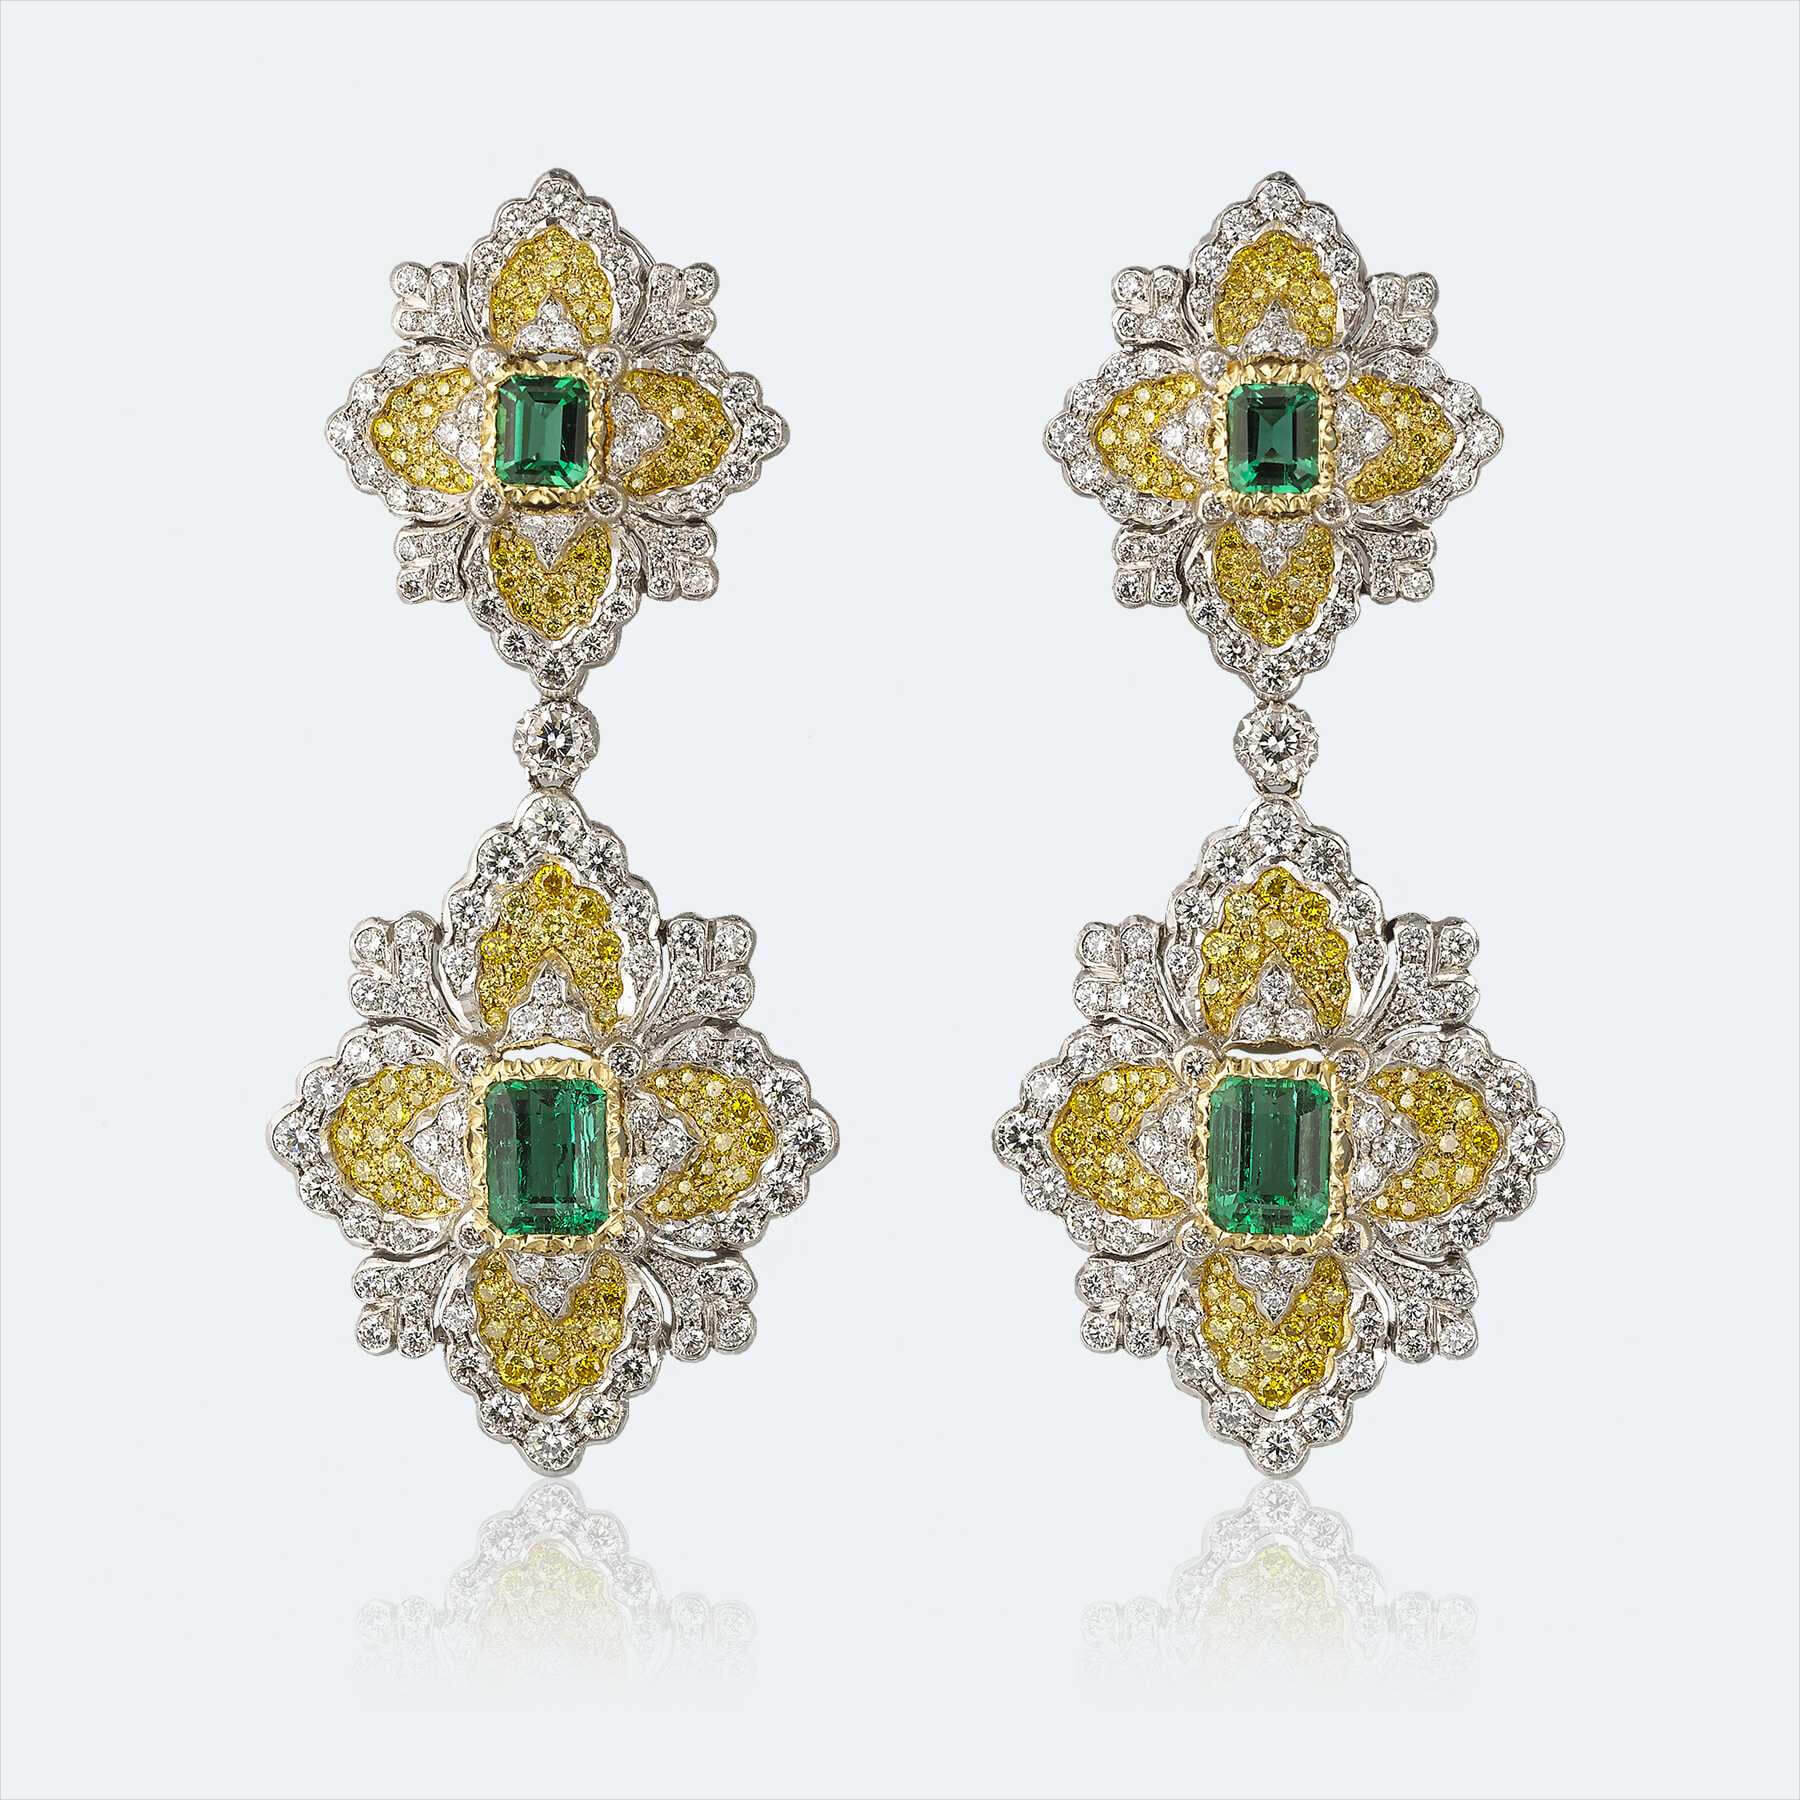 BUCCELLATI - Pendant Earrings in White Gold Set with Diamonds (2)